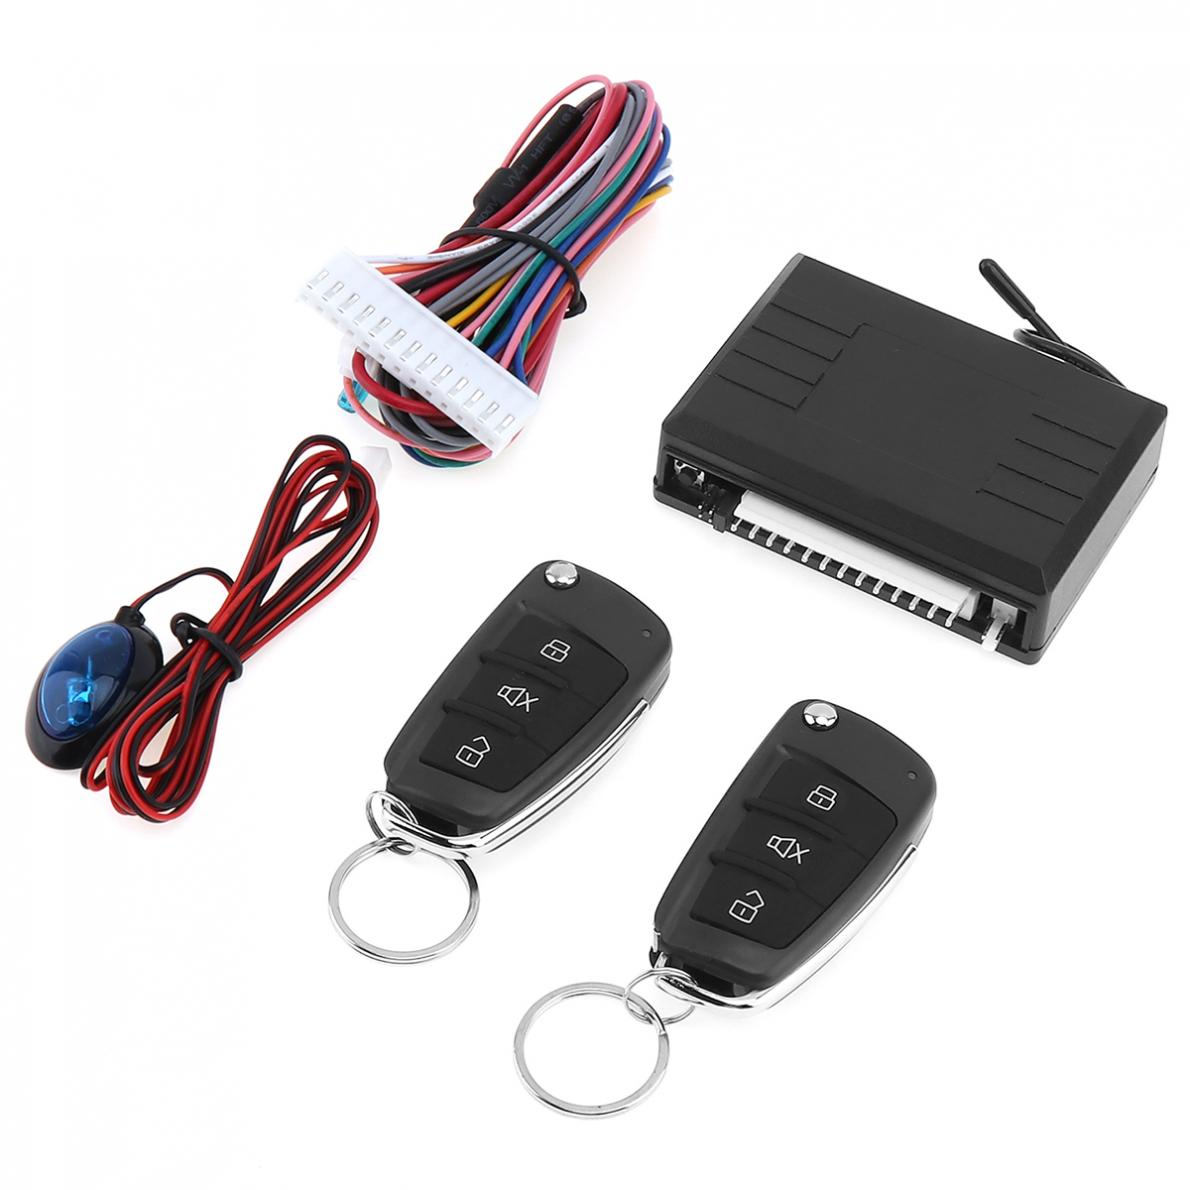 12V Car Alarm System Vehicle Keyless Entry System with Remote Control Door Lock Automatically LED indicator for Hyundai Car in Burglar Alarm from Automobiles Motorcycles